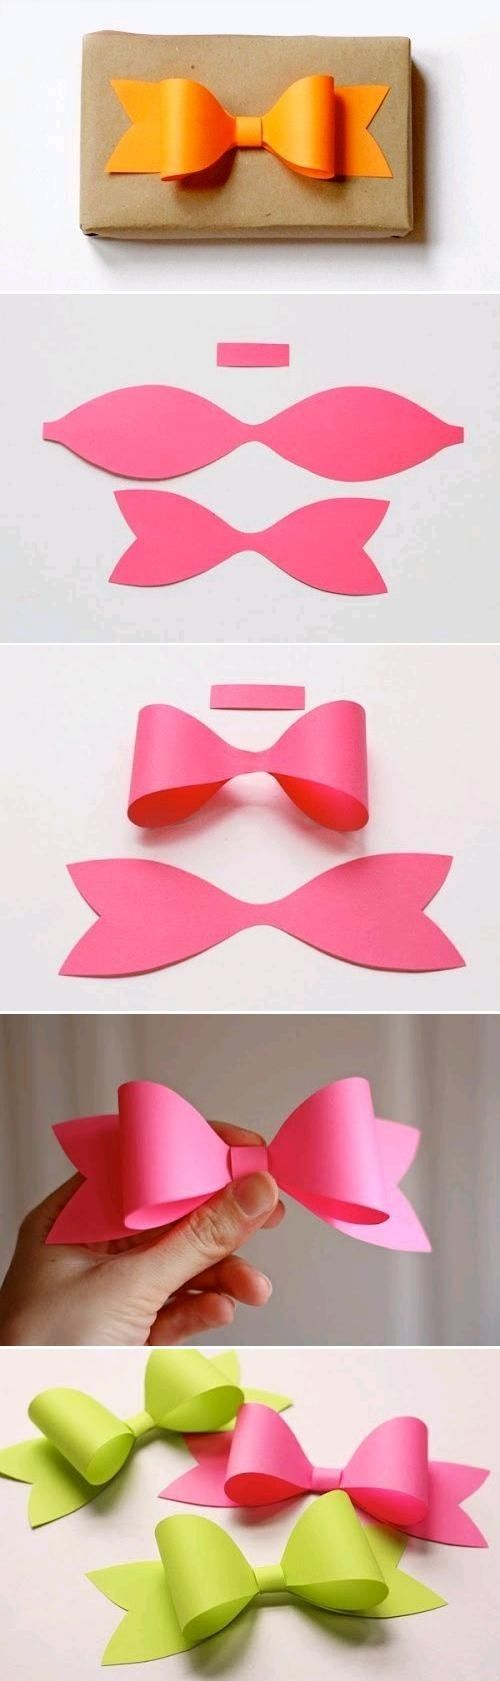 DIY paper bow- love this!!